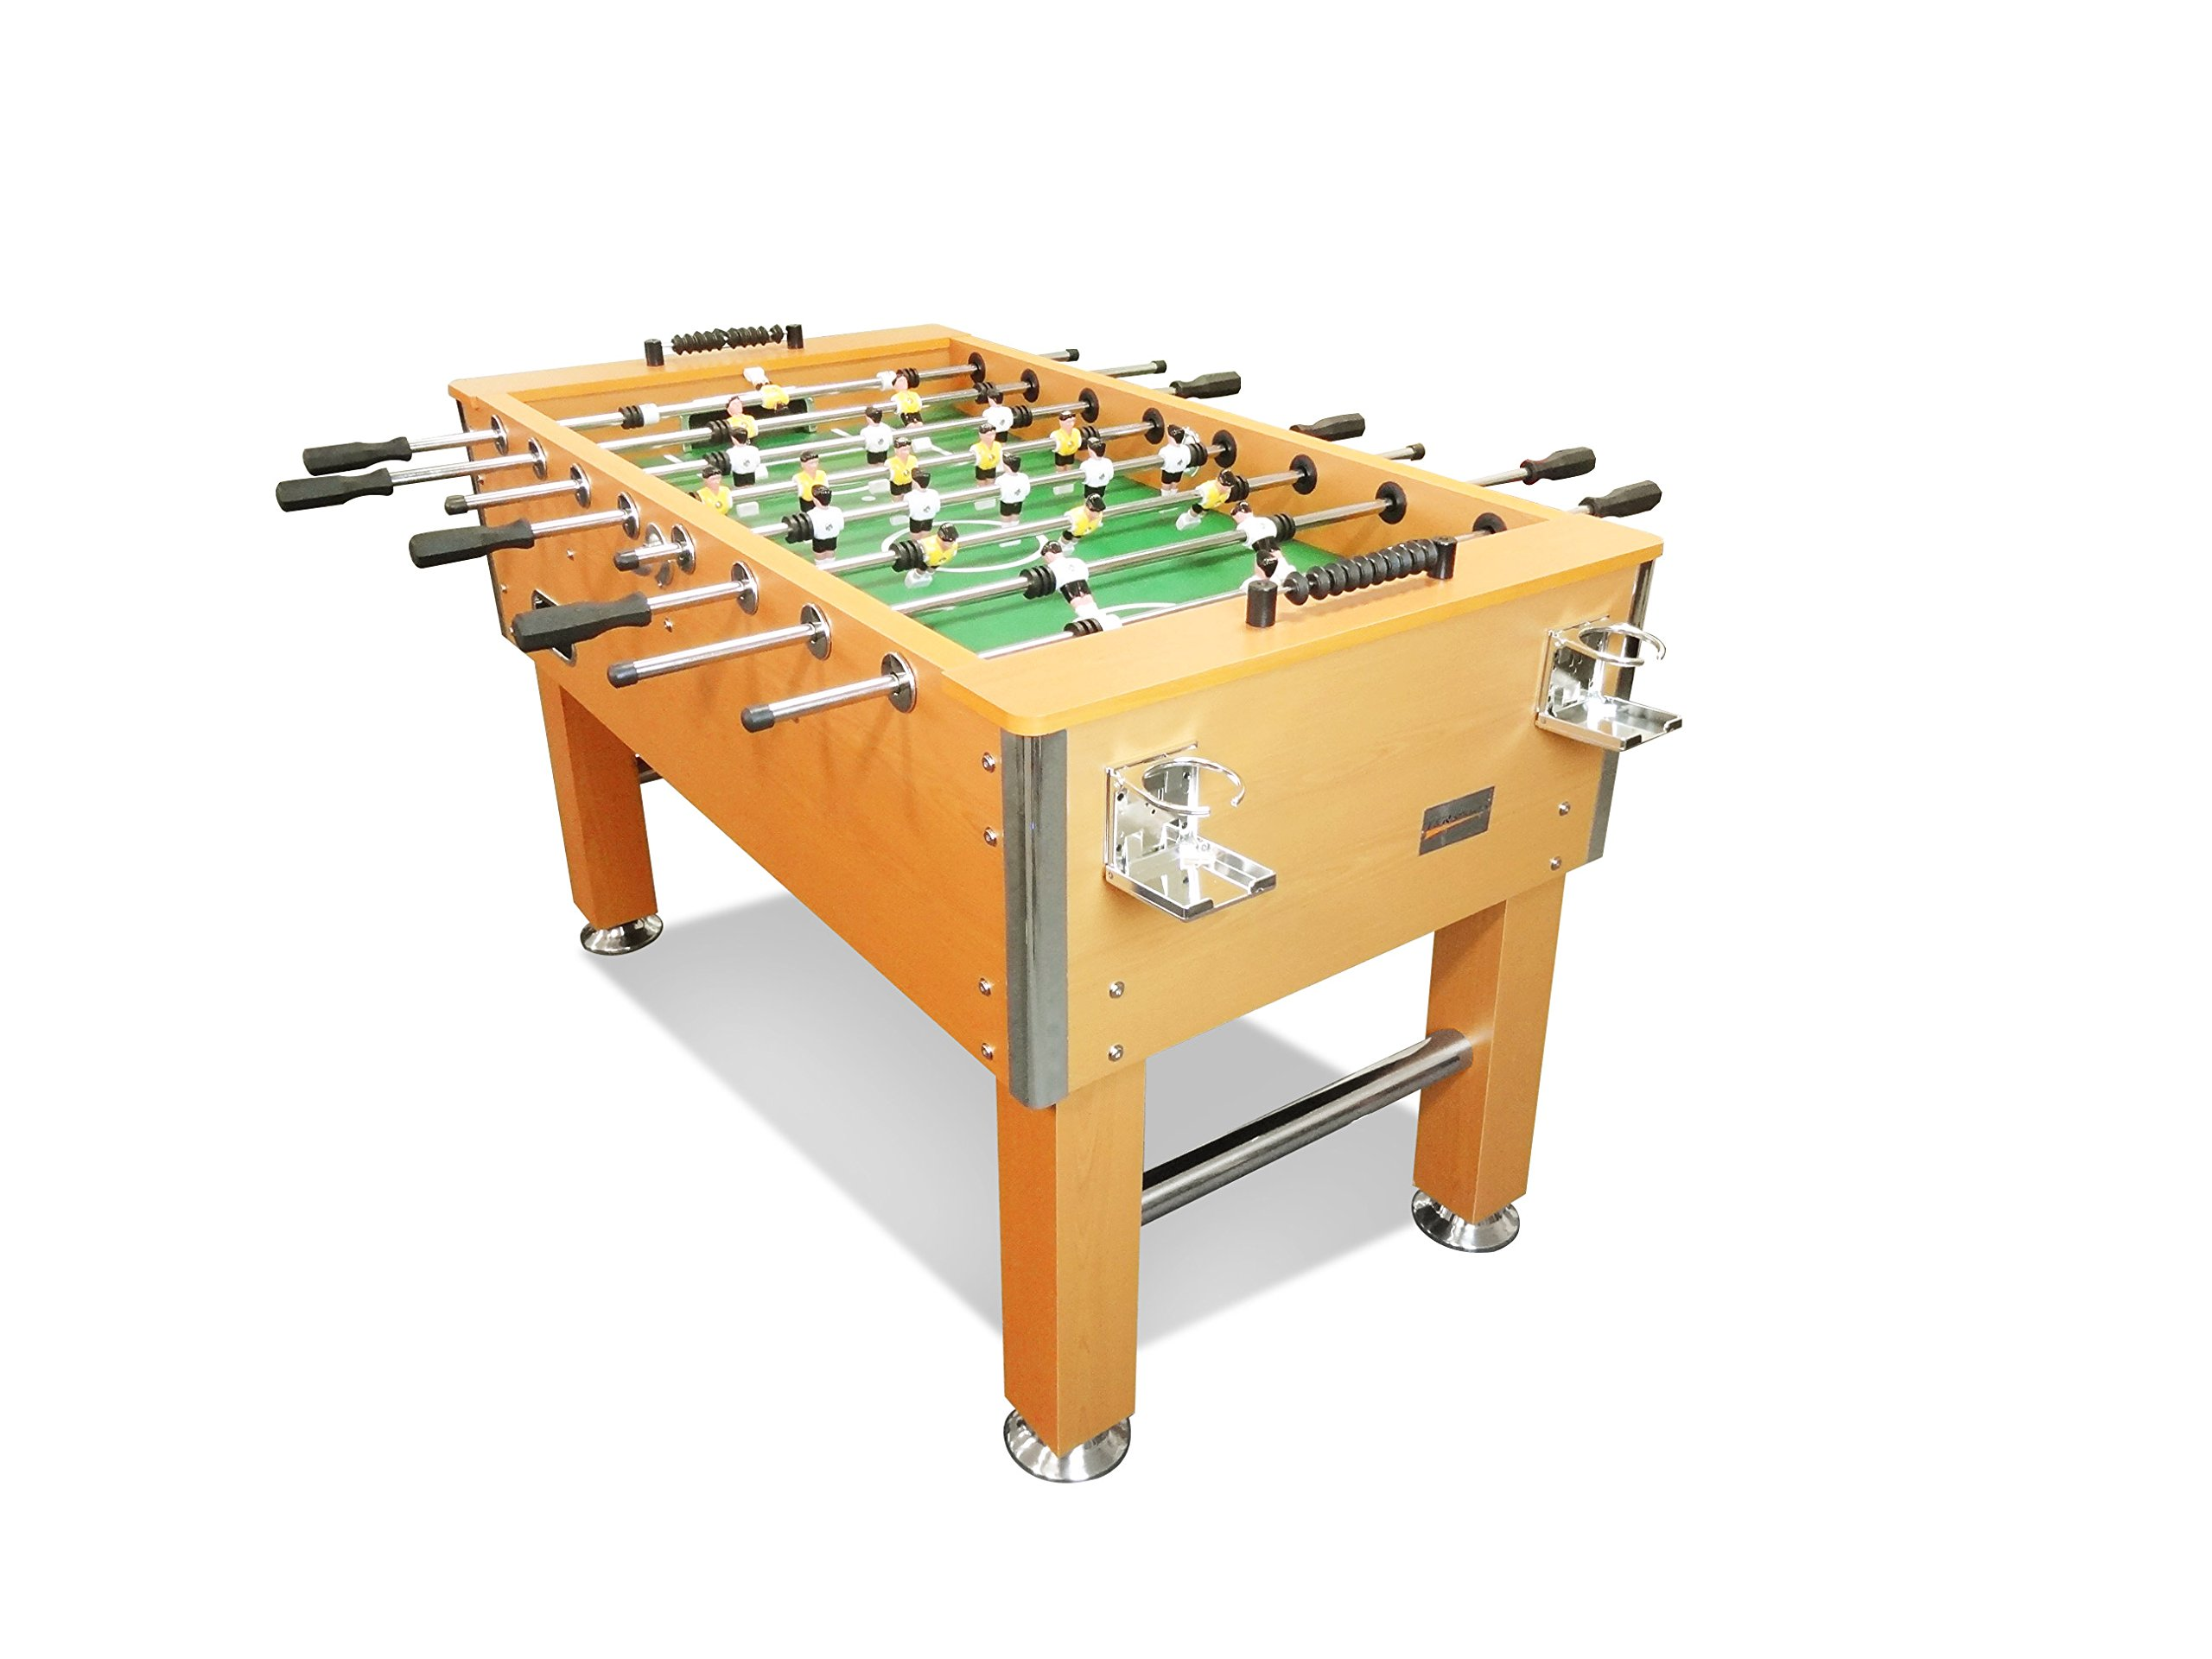 T&R sports 60'' Soccer Foosball Table Heavy Duty for Pub Game Room with Drink Holders, Oak